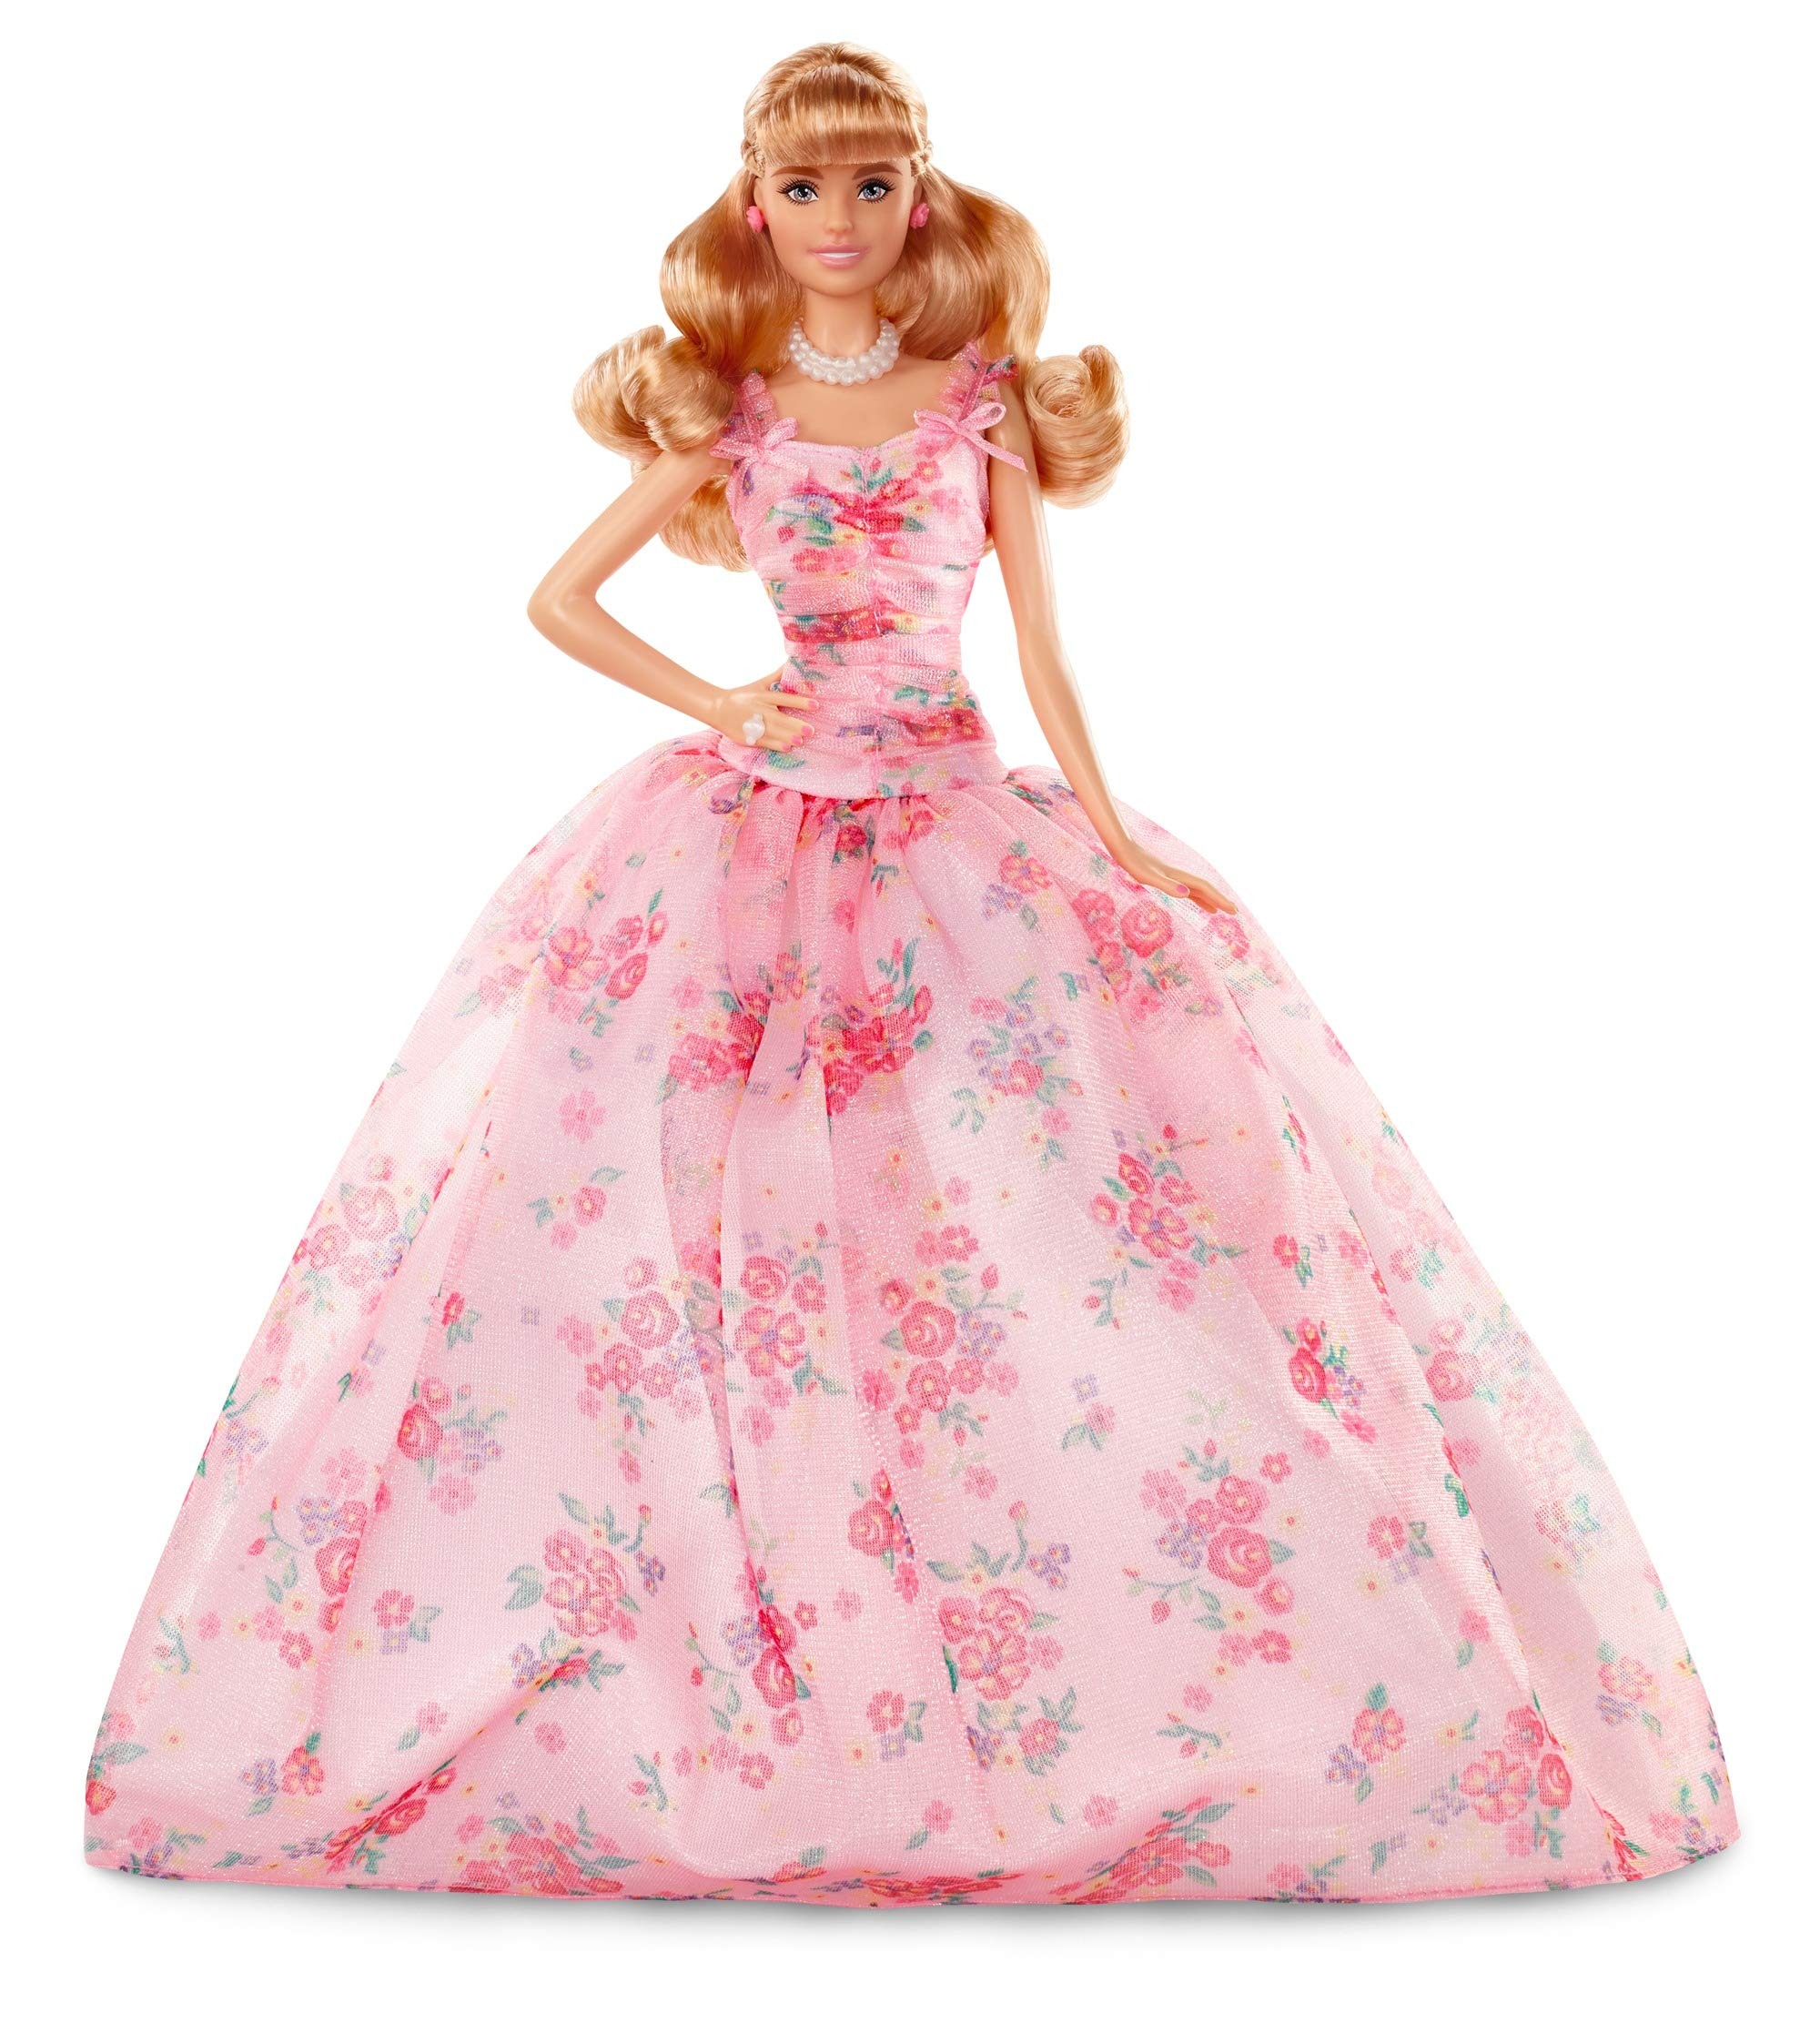 Barbie Collector: Birthday Wishes Doll with Blonde Hair, 11.5-Inch, Wearing Floral Gown, with Doll Stand and Certificate of Authenticity, Makes A Great Gift for 6 Year Olds and Up